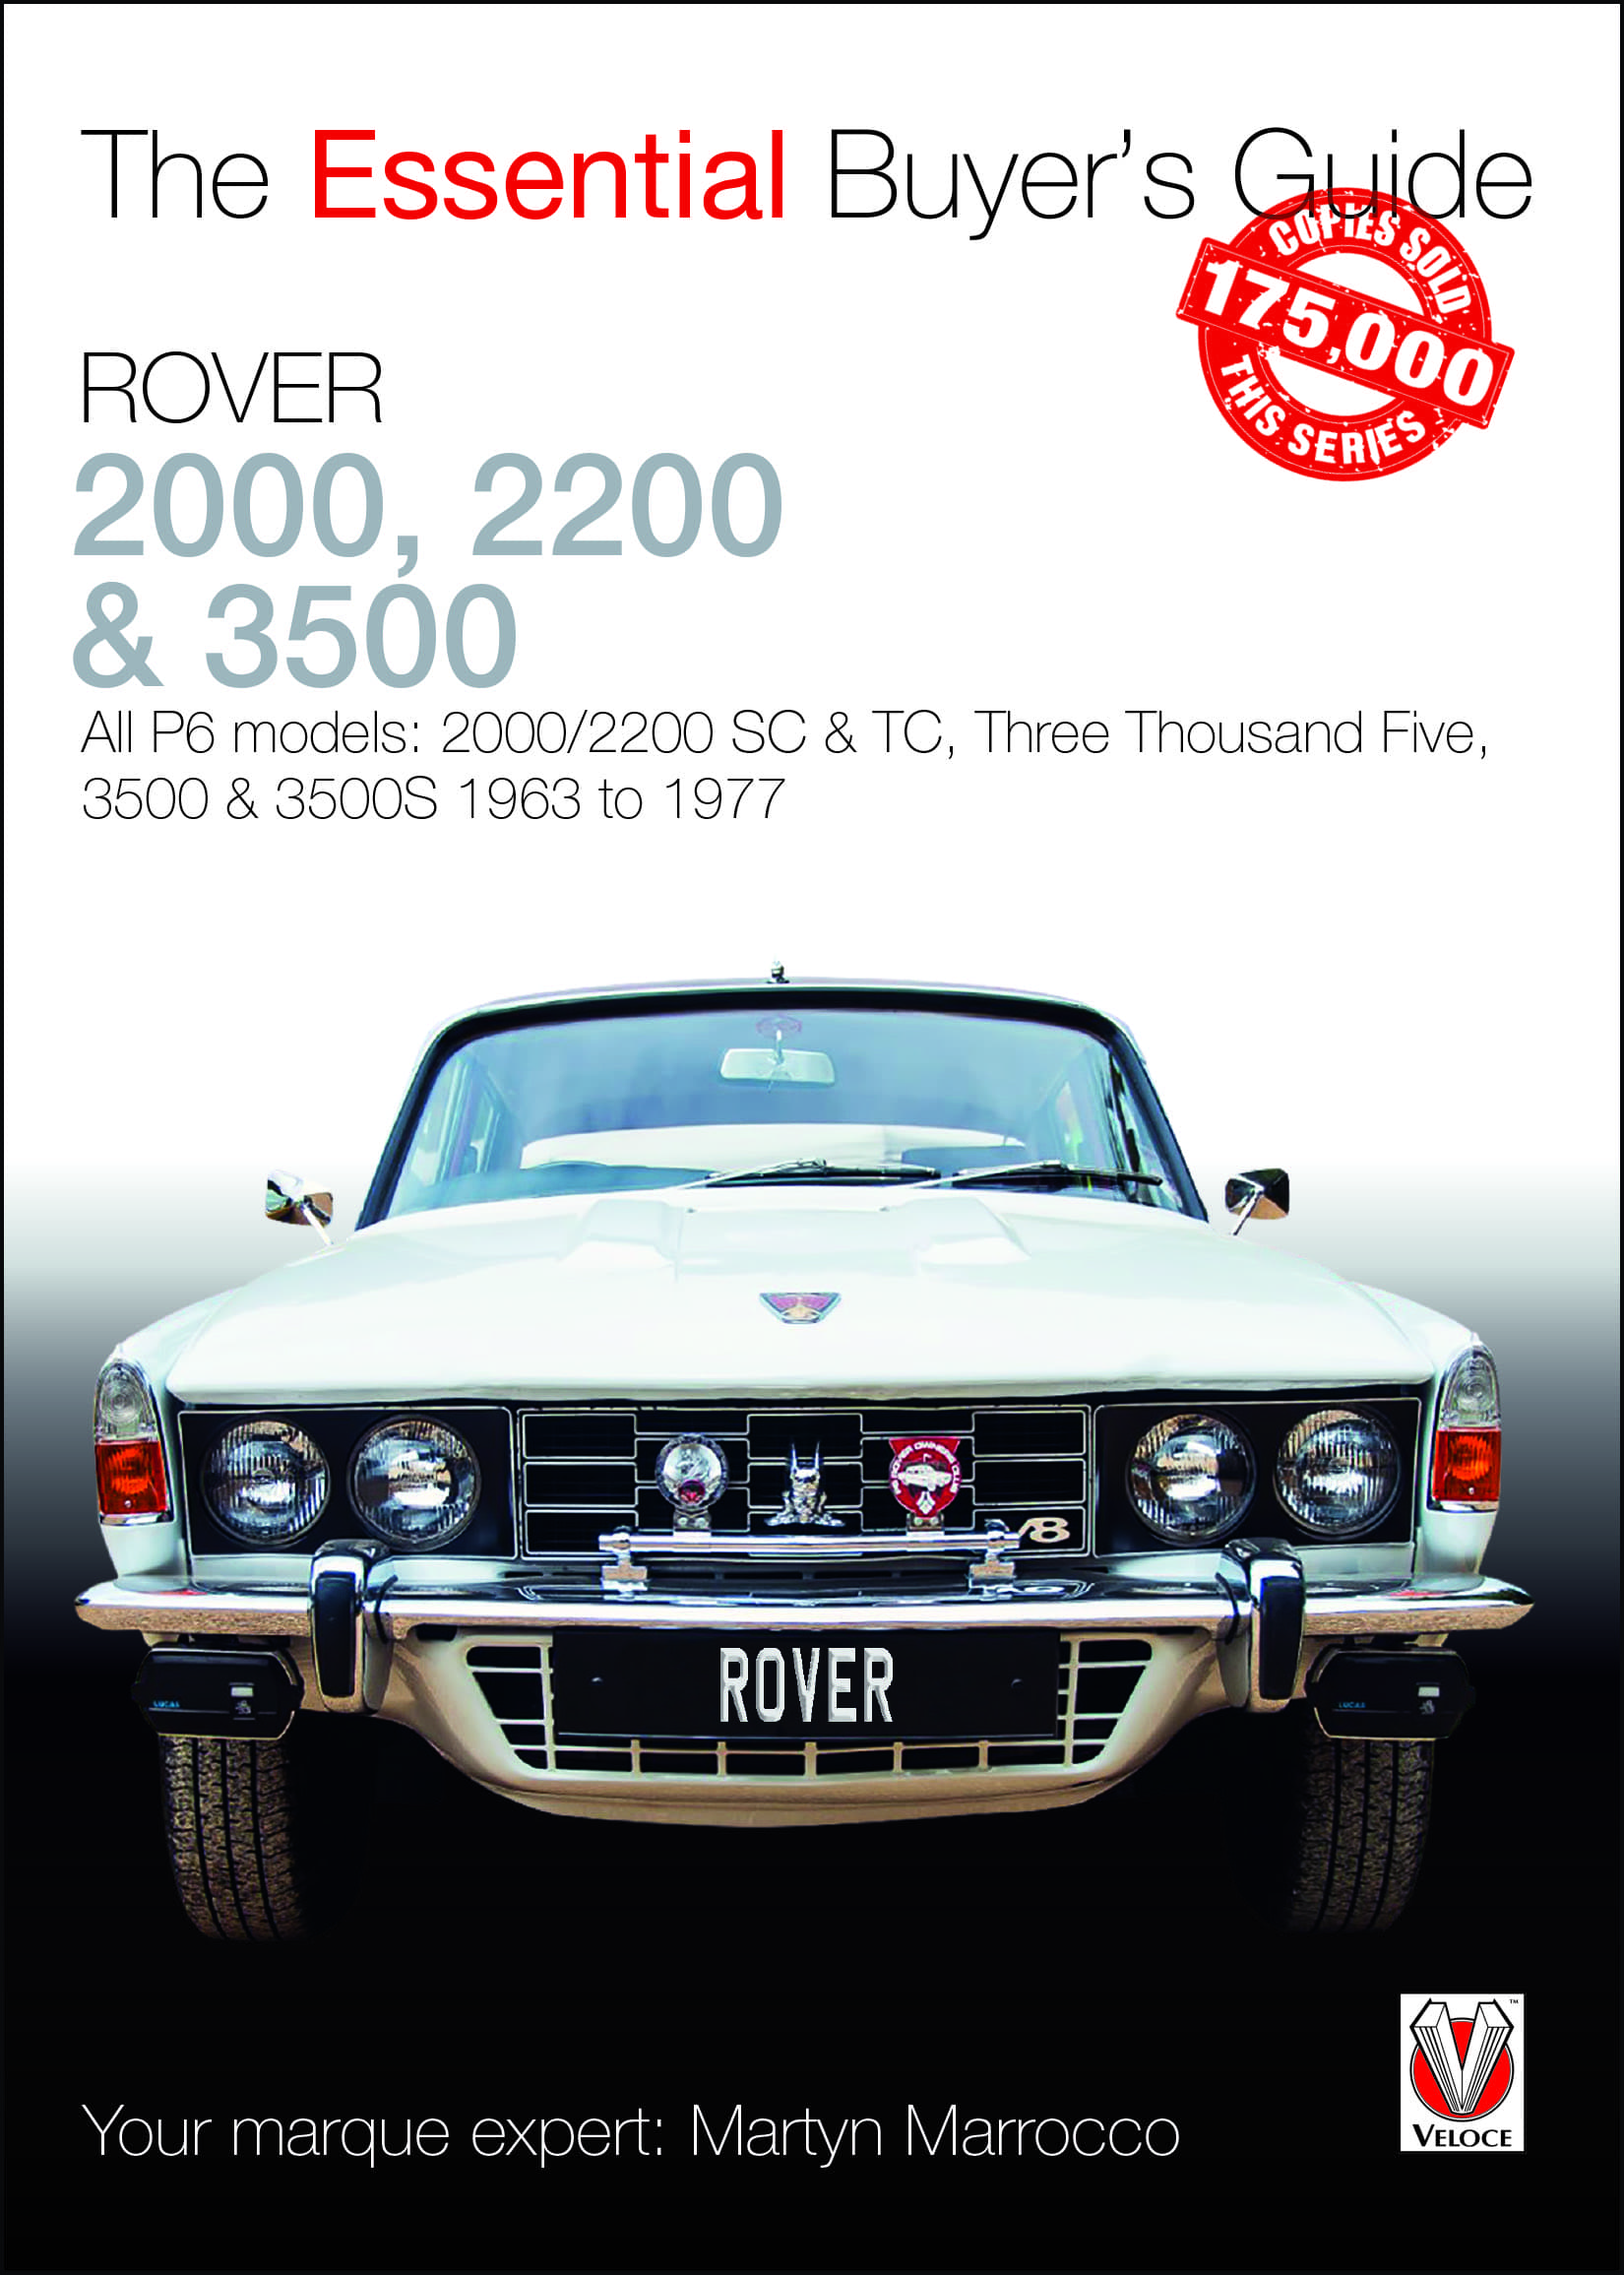 Rover 2000, 2500 & 3500 - The Essential Buyer's Guide cover